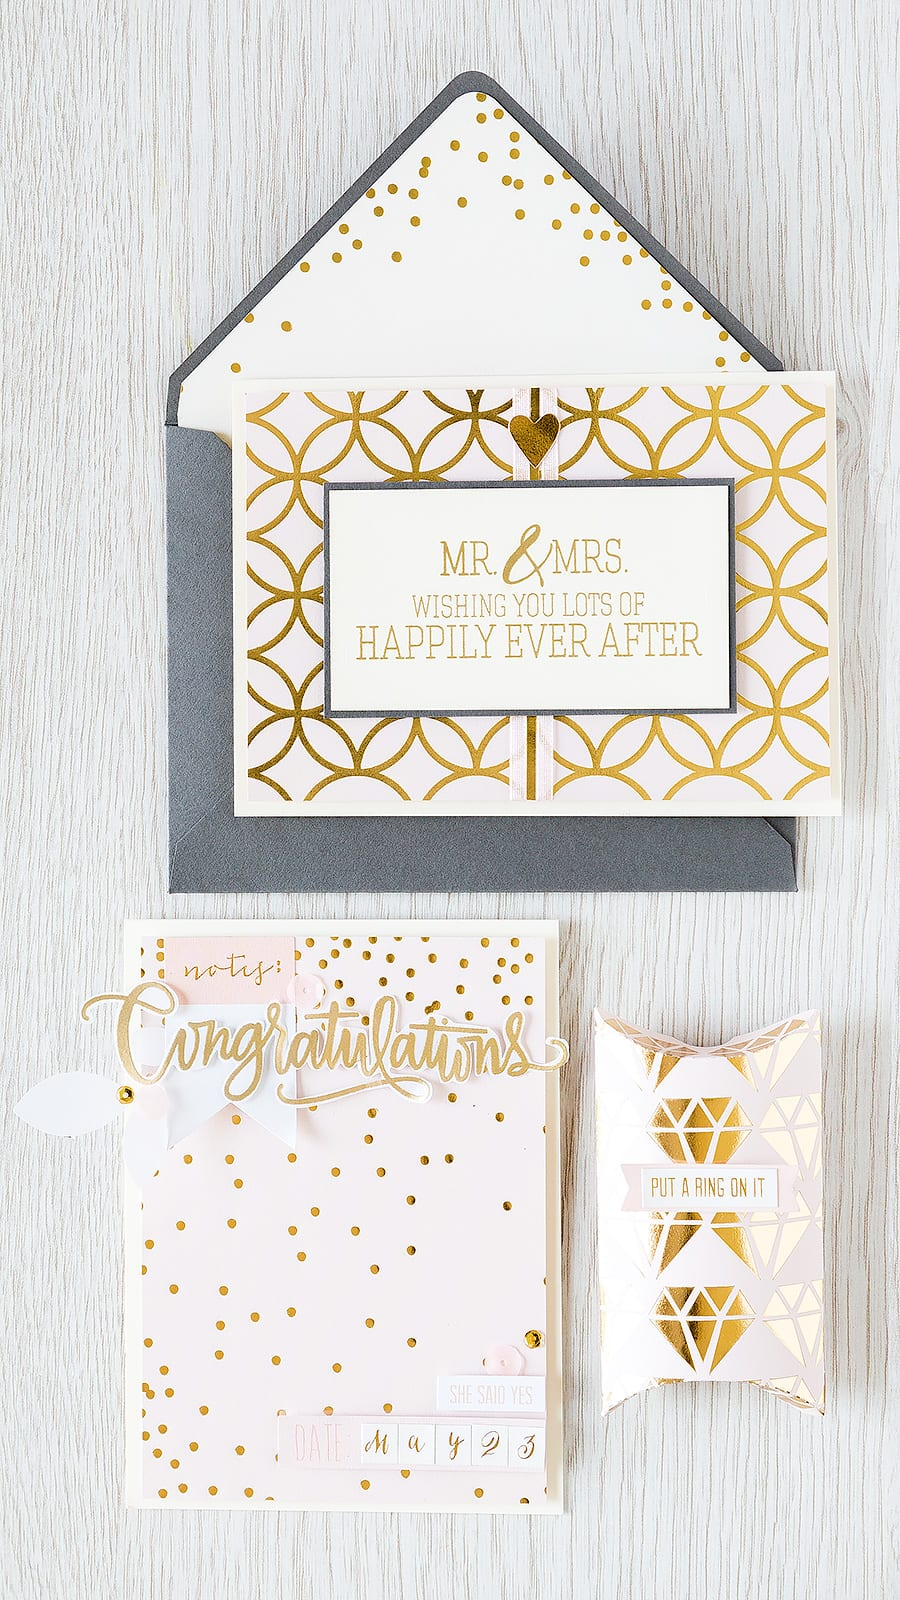 Debby Hughes - Lime Doodle Design http://limedoodledesign.com/2015/04/may-card-kit-put-a-ring-on-it/ #wedding #box #pink #gold